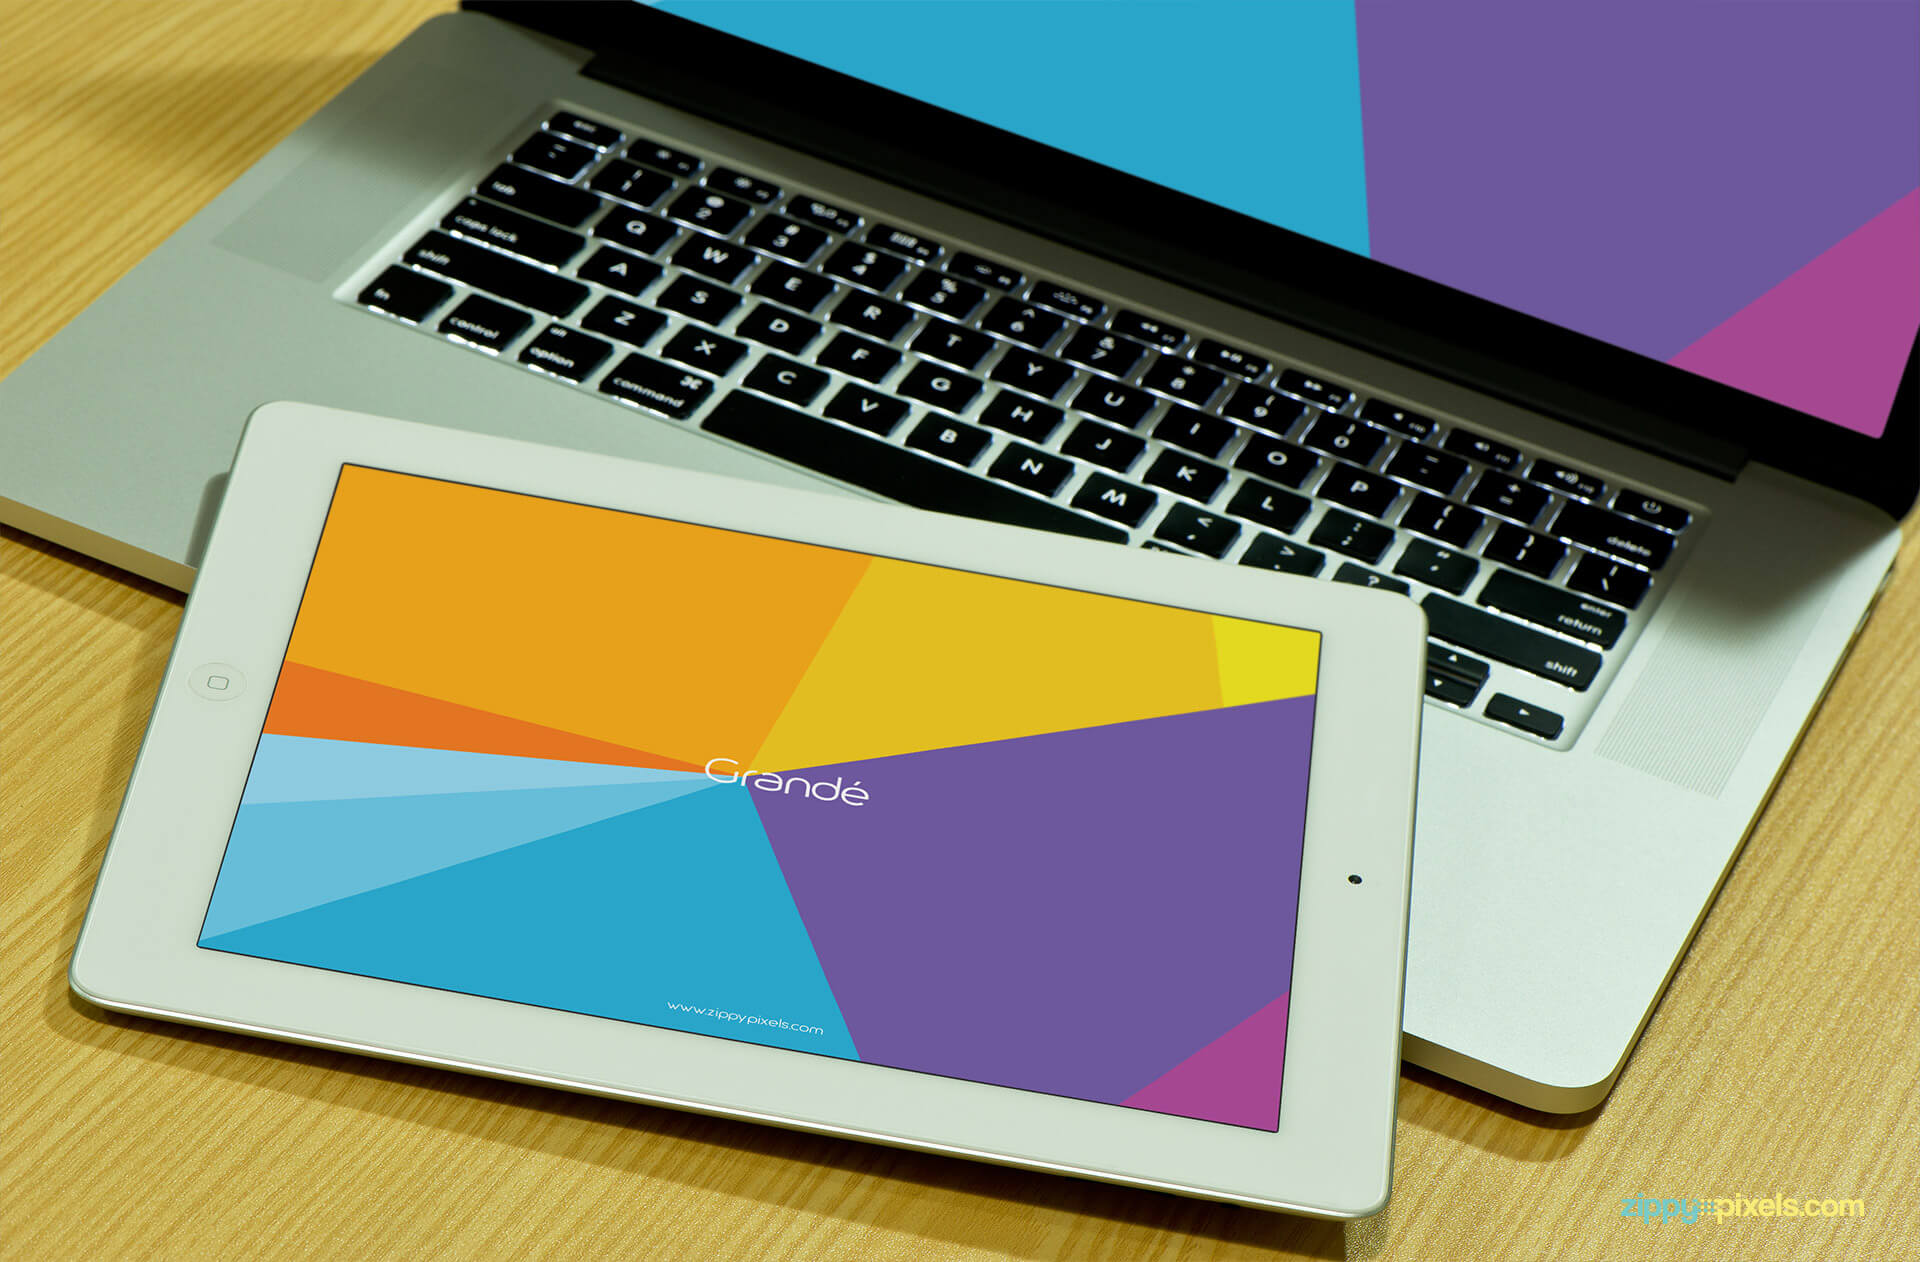 Device Mockup of a iPad on Macboo Pro for Presentation